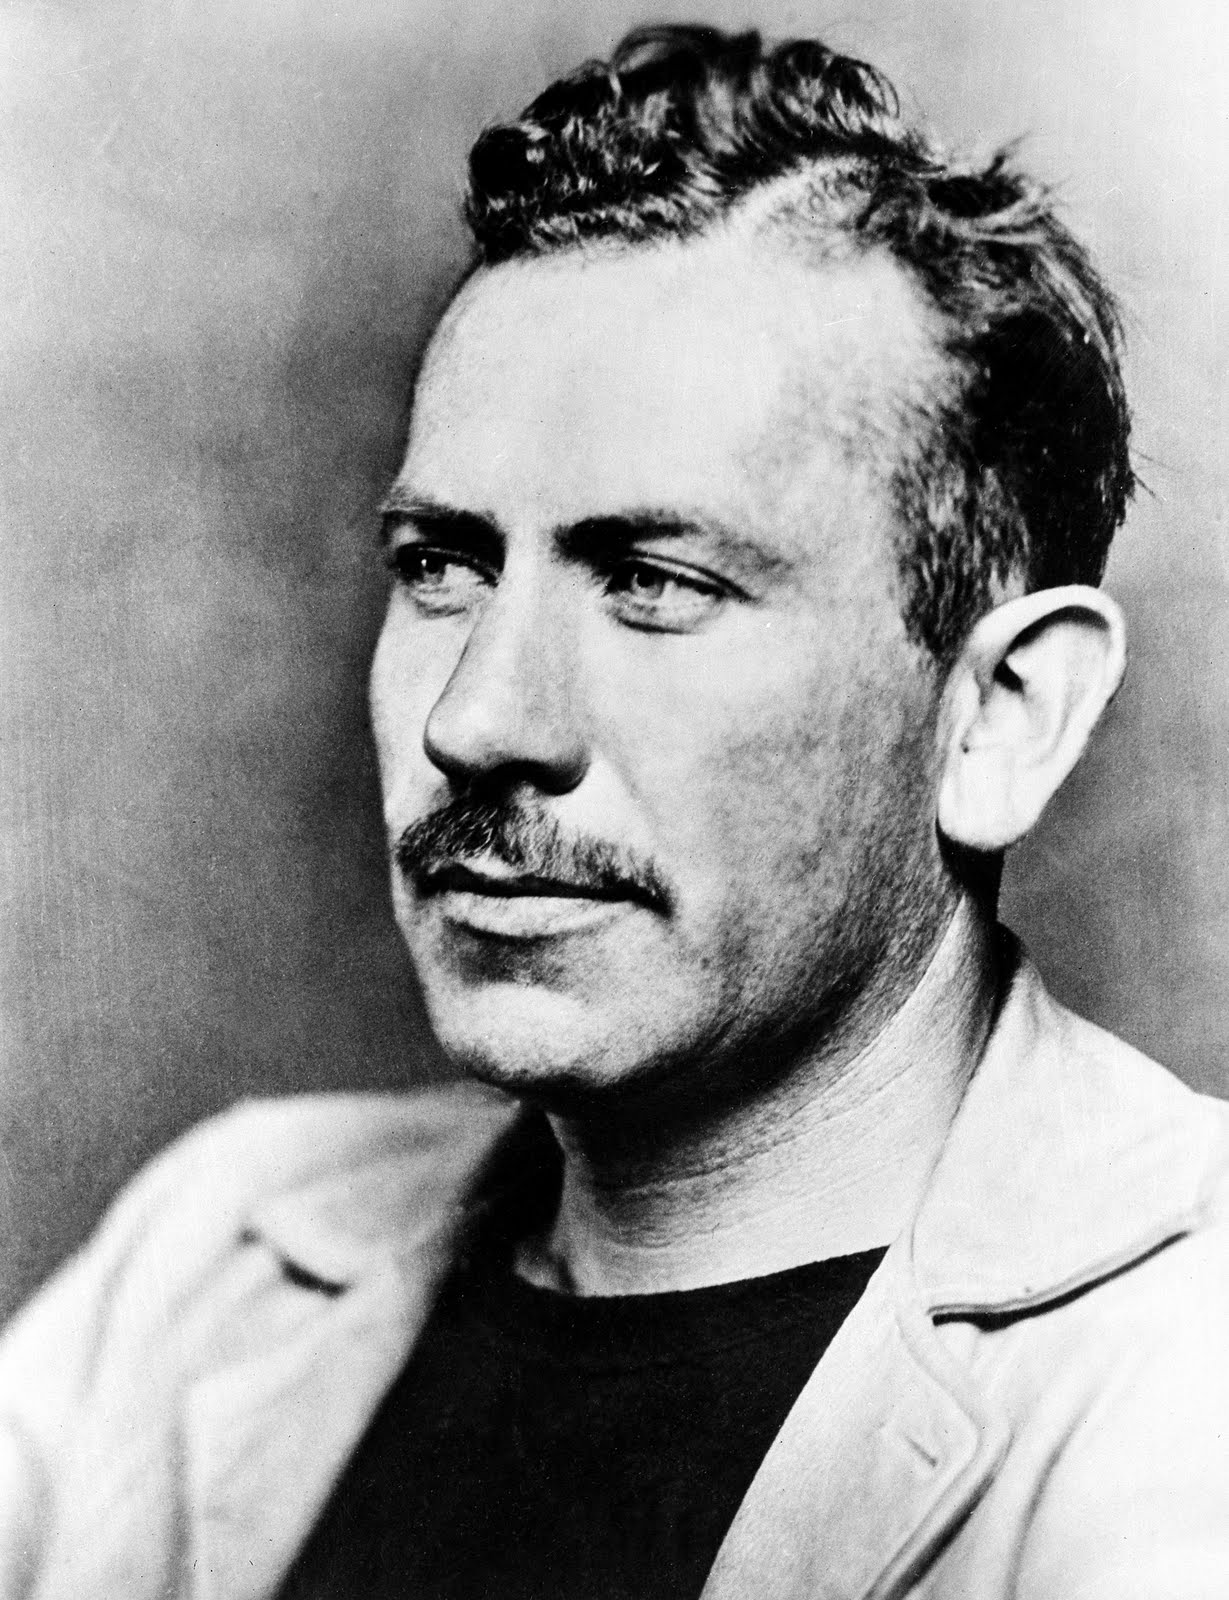 How does John Steinbeck use social realism in The Grapes of Wrath?